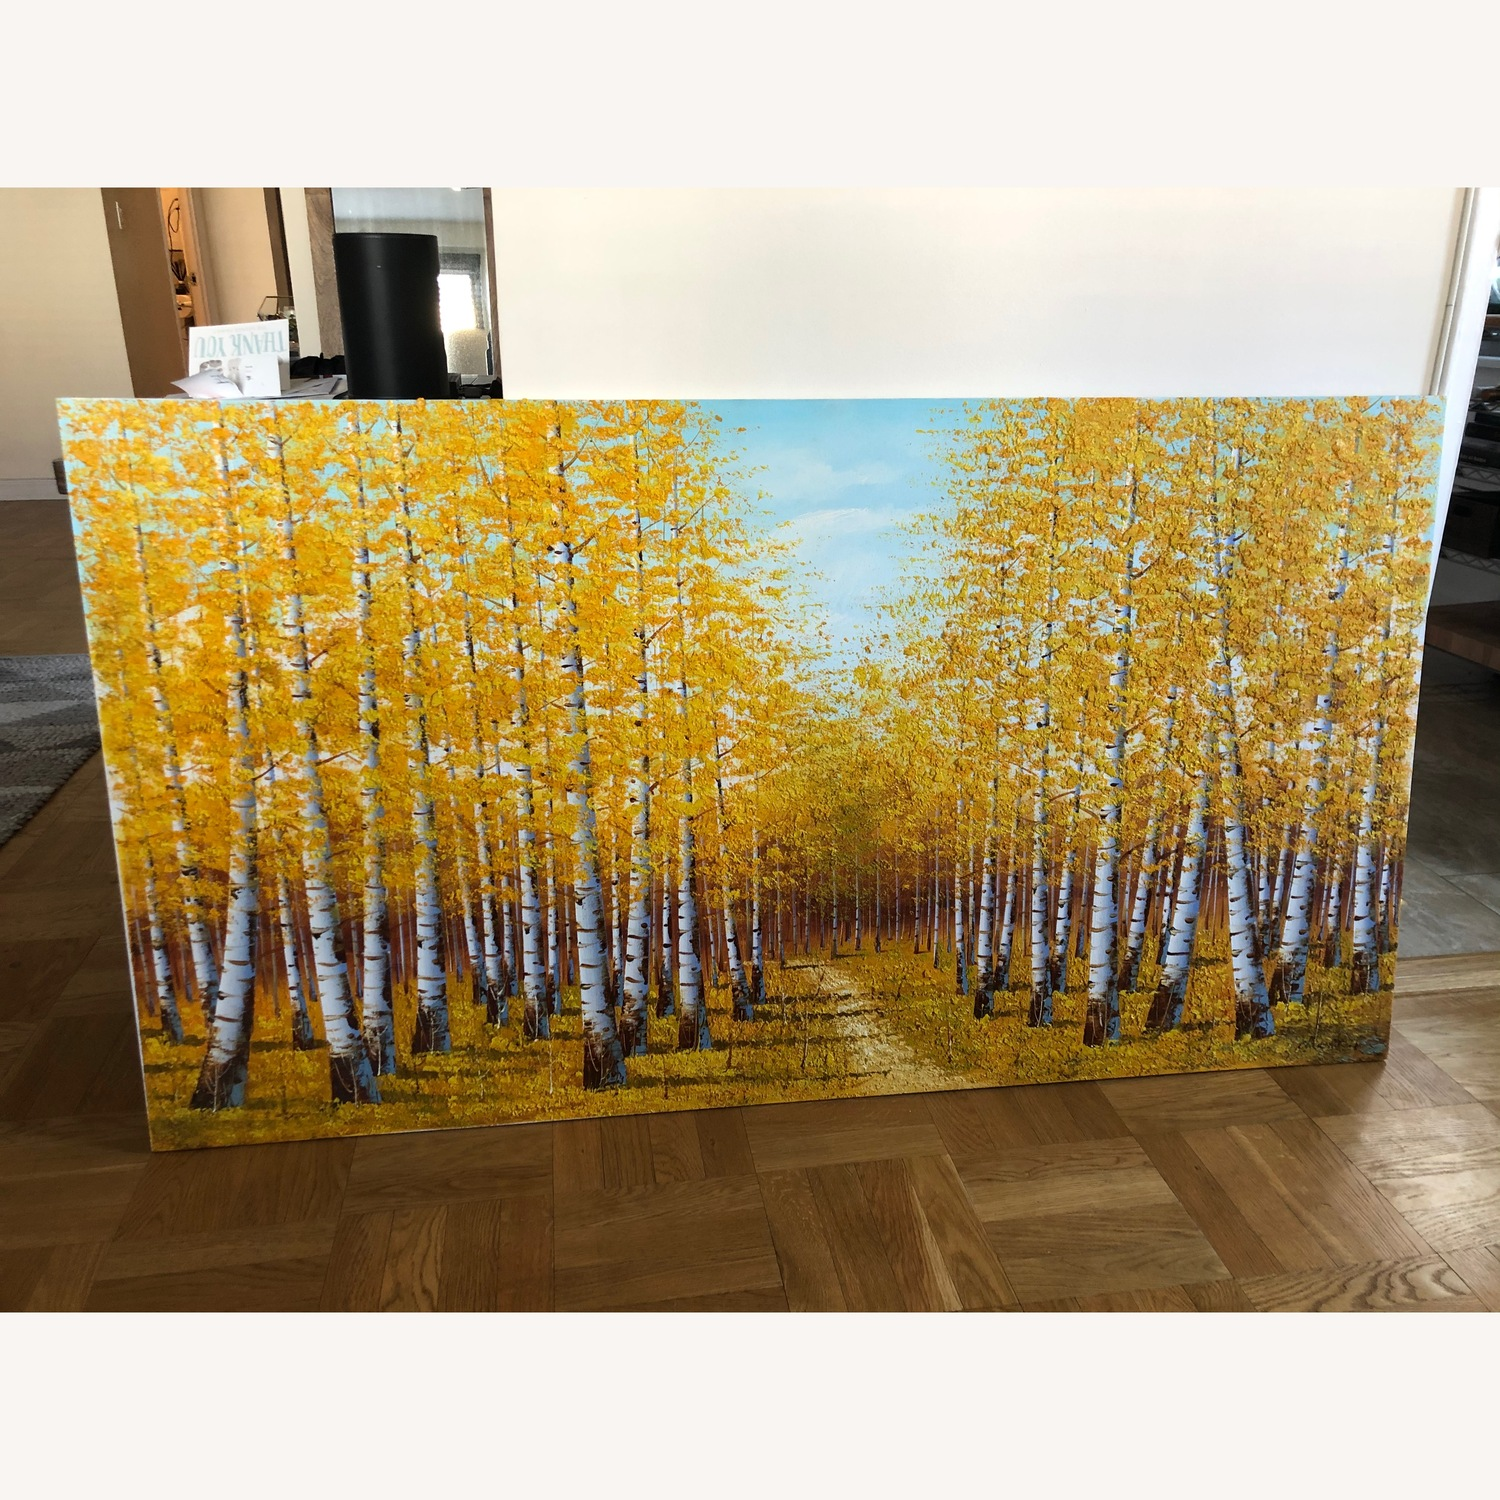 Autumn Bamboo Forest Painting on Canvas - image-1